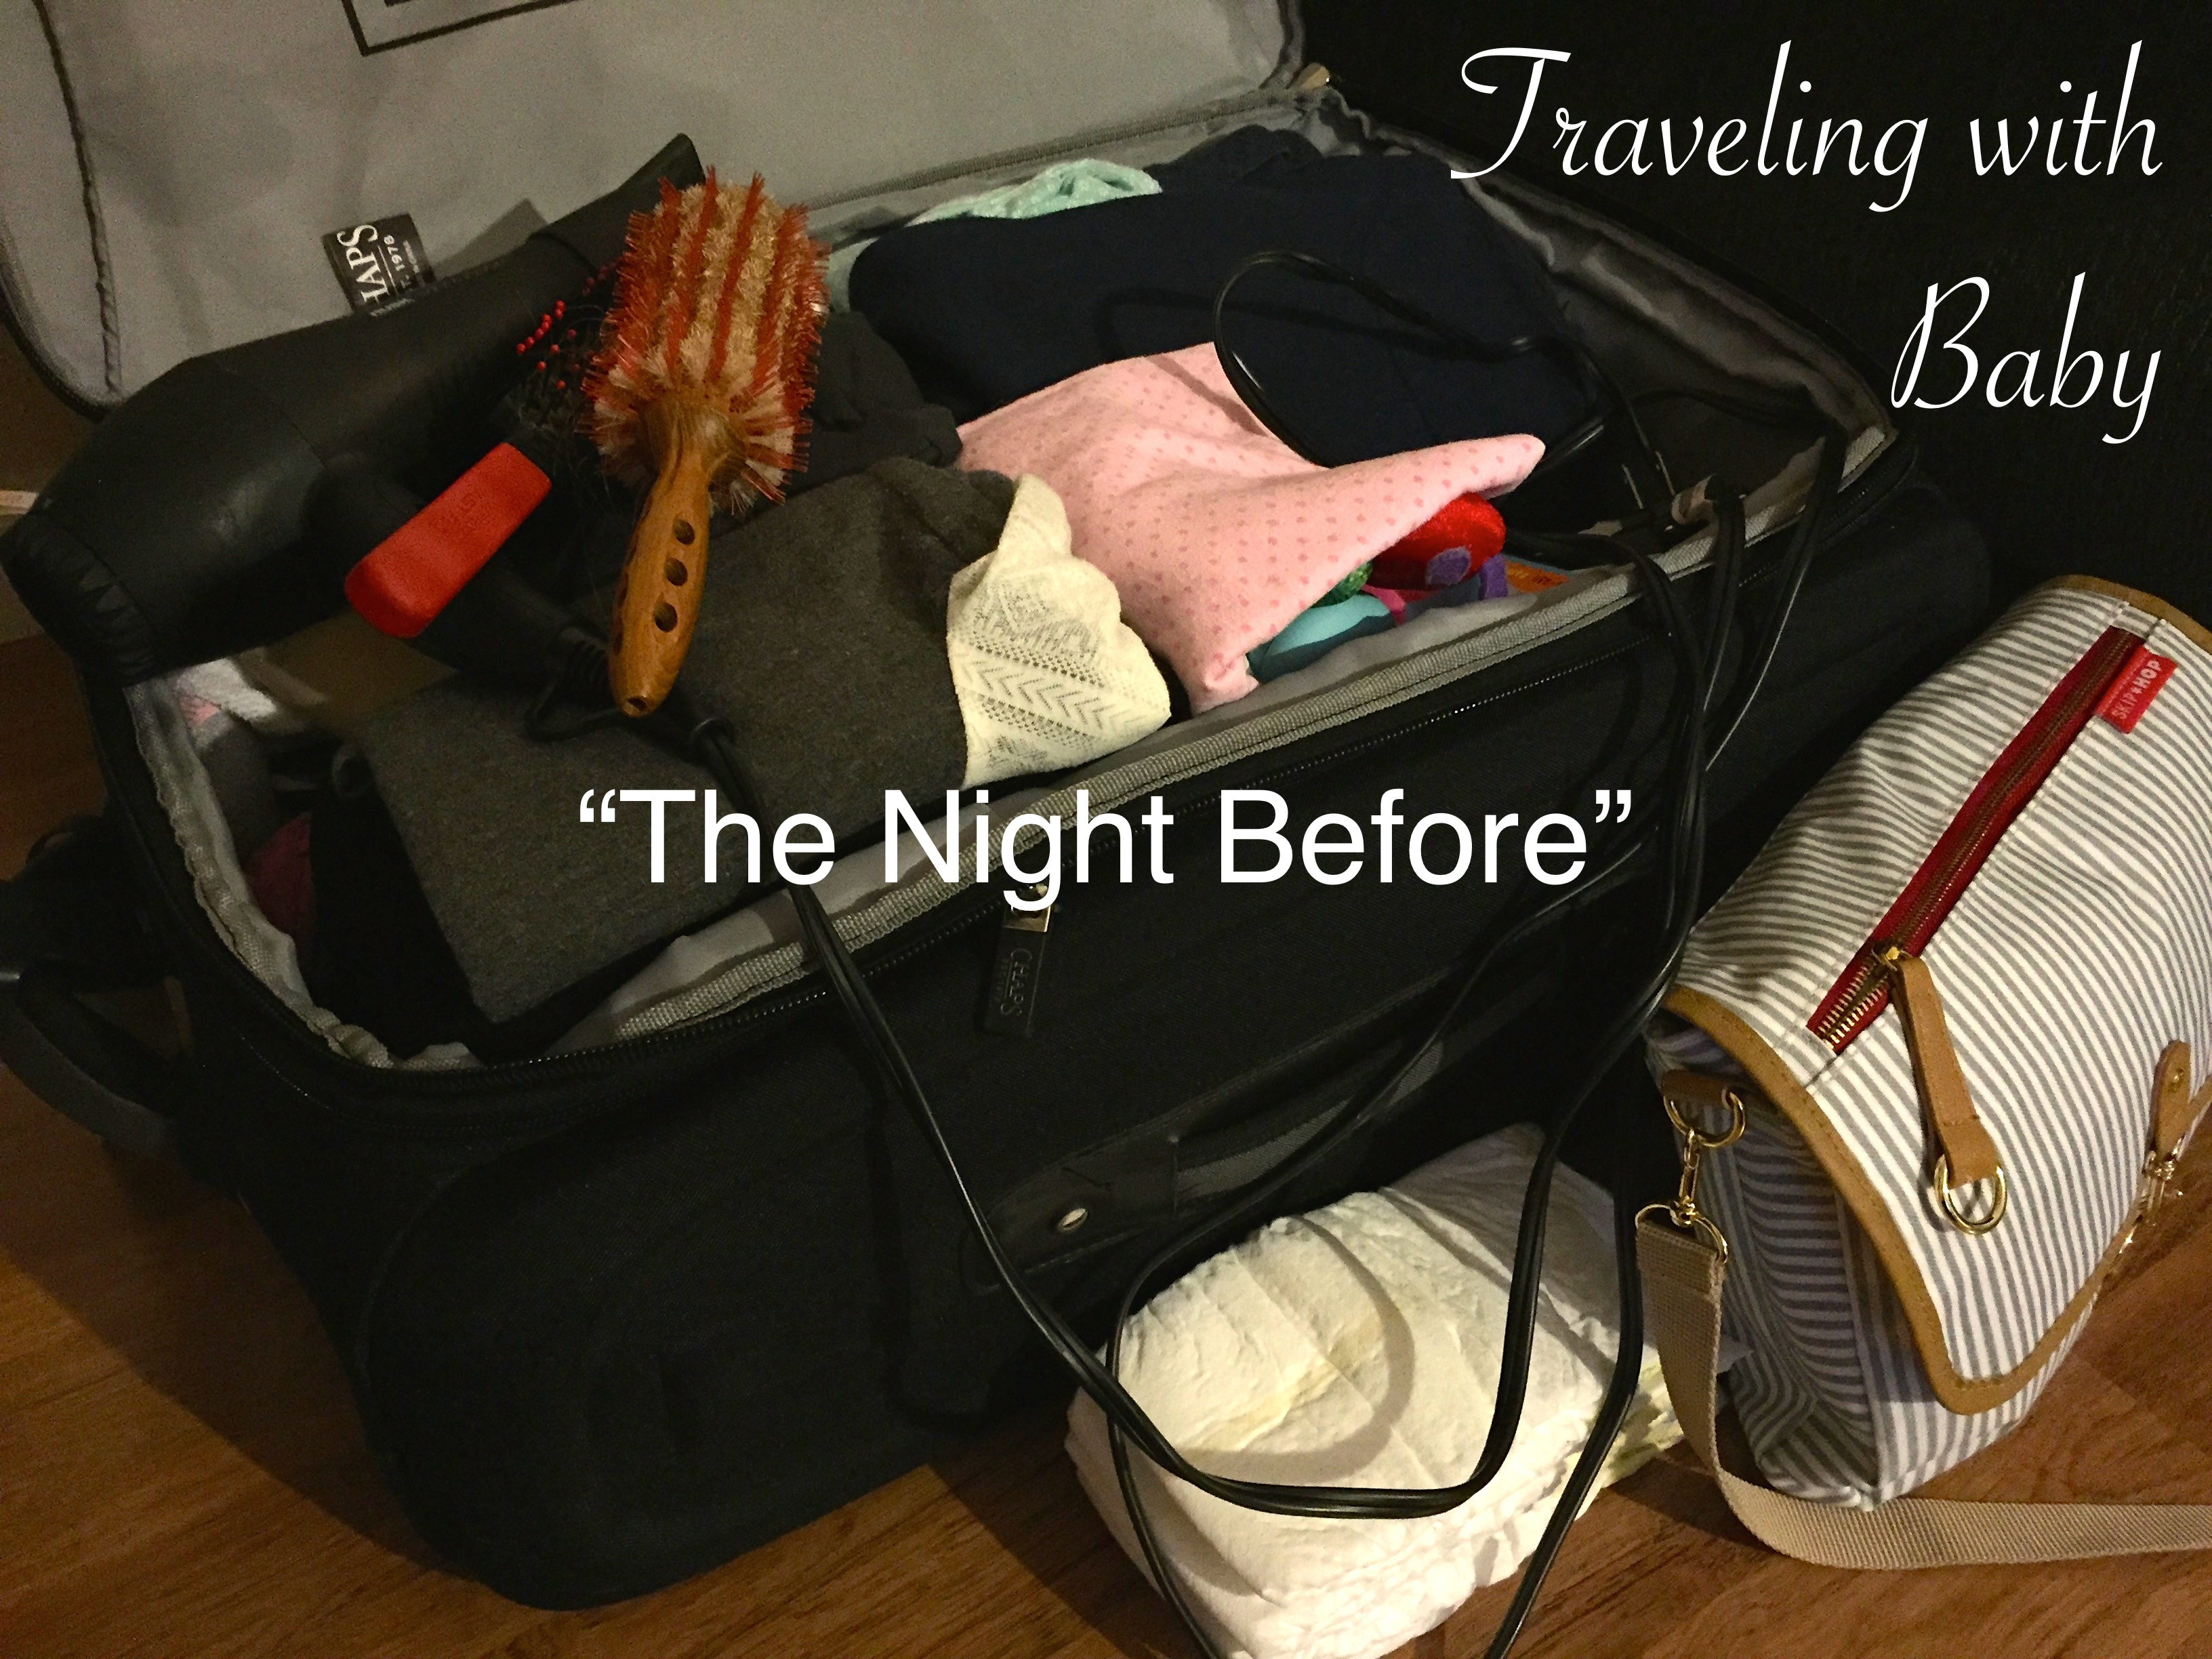 Traveling with Baby: The Night Before